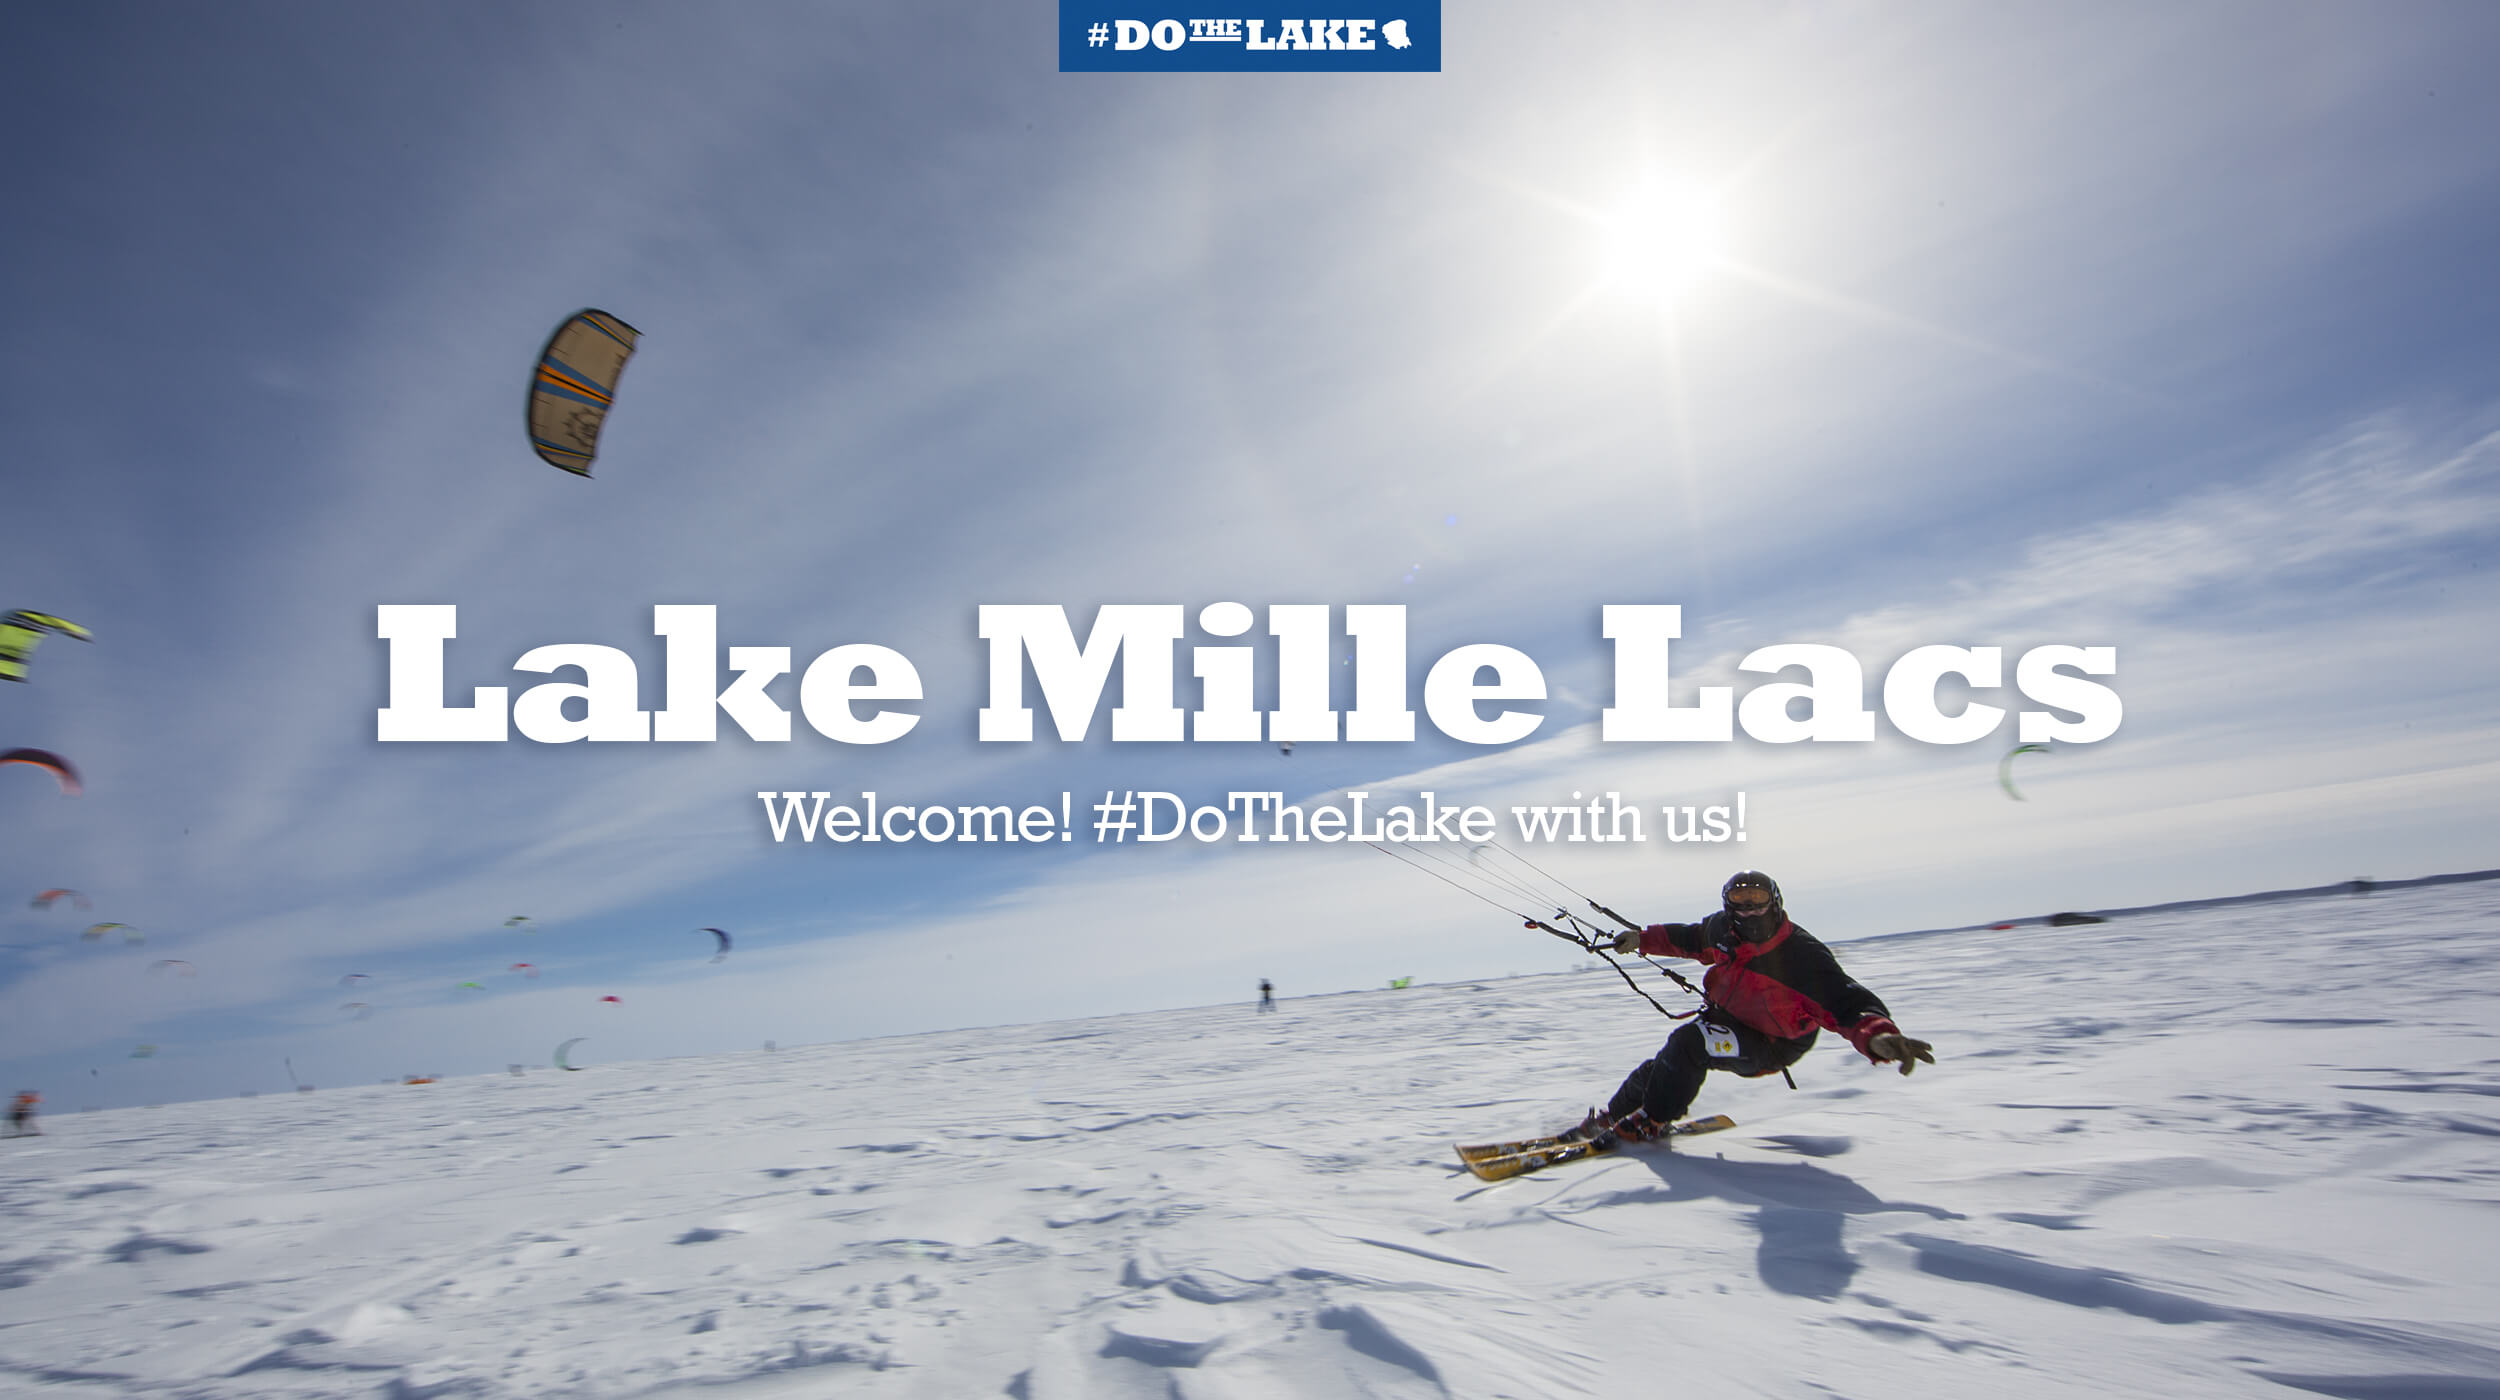 Lake Mille Lacs welcome